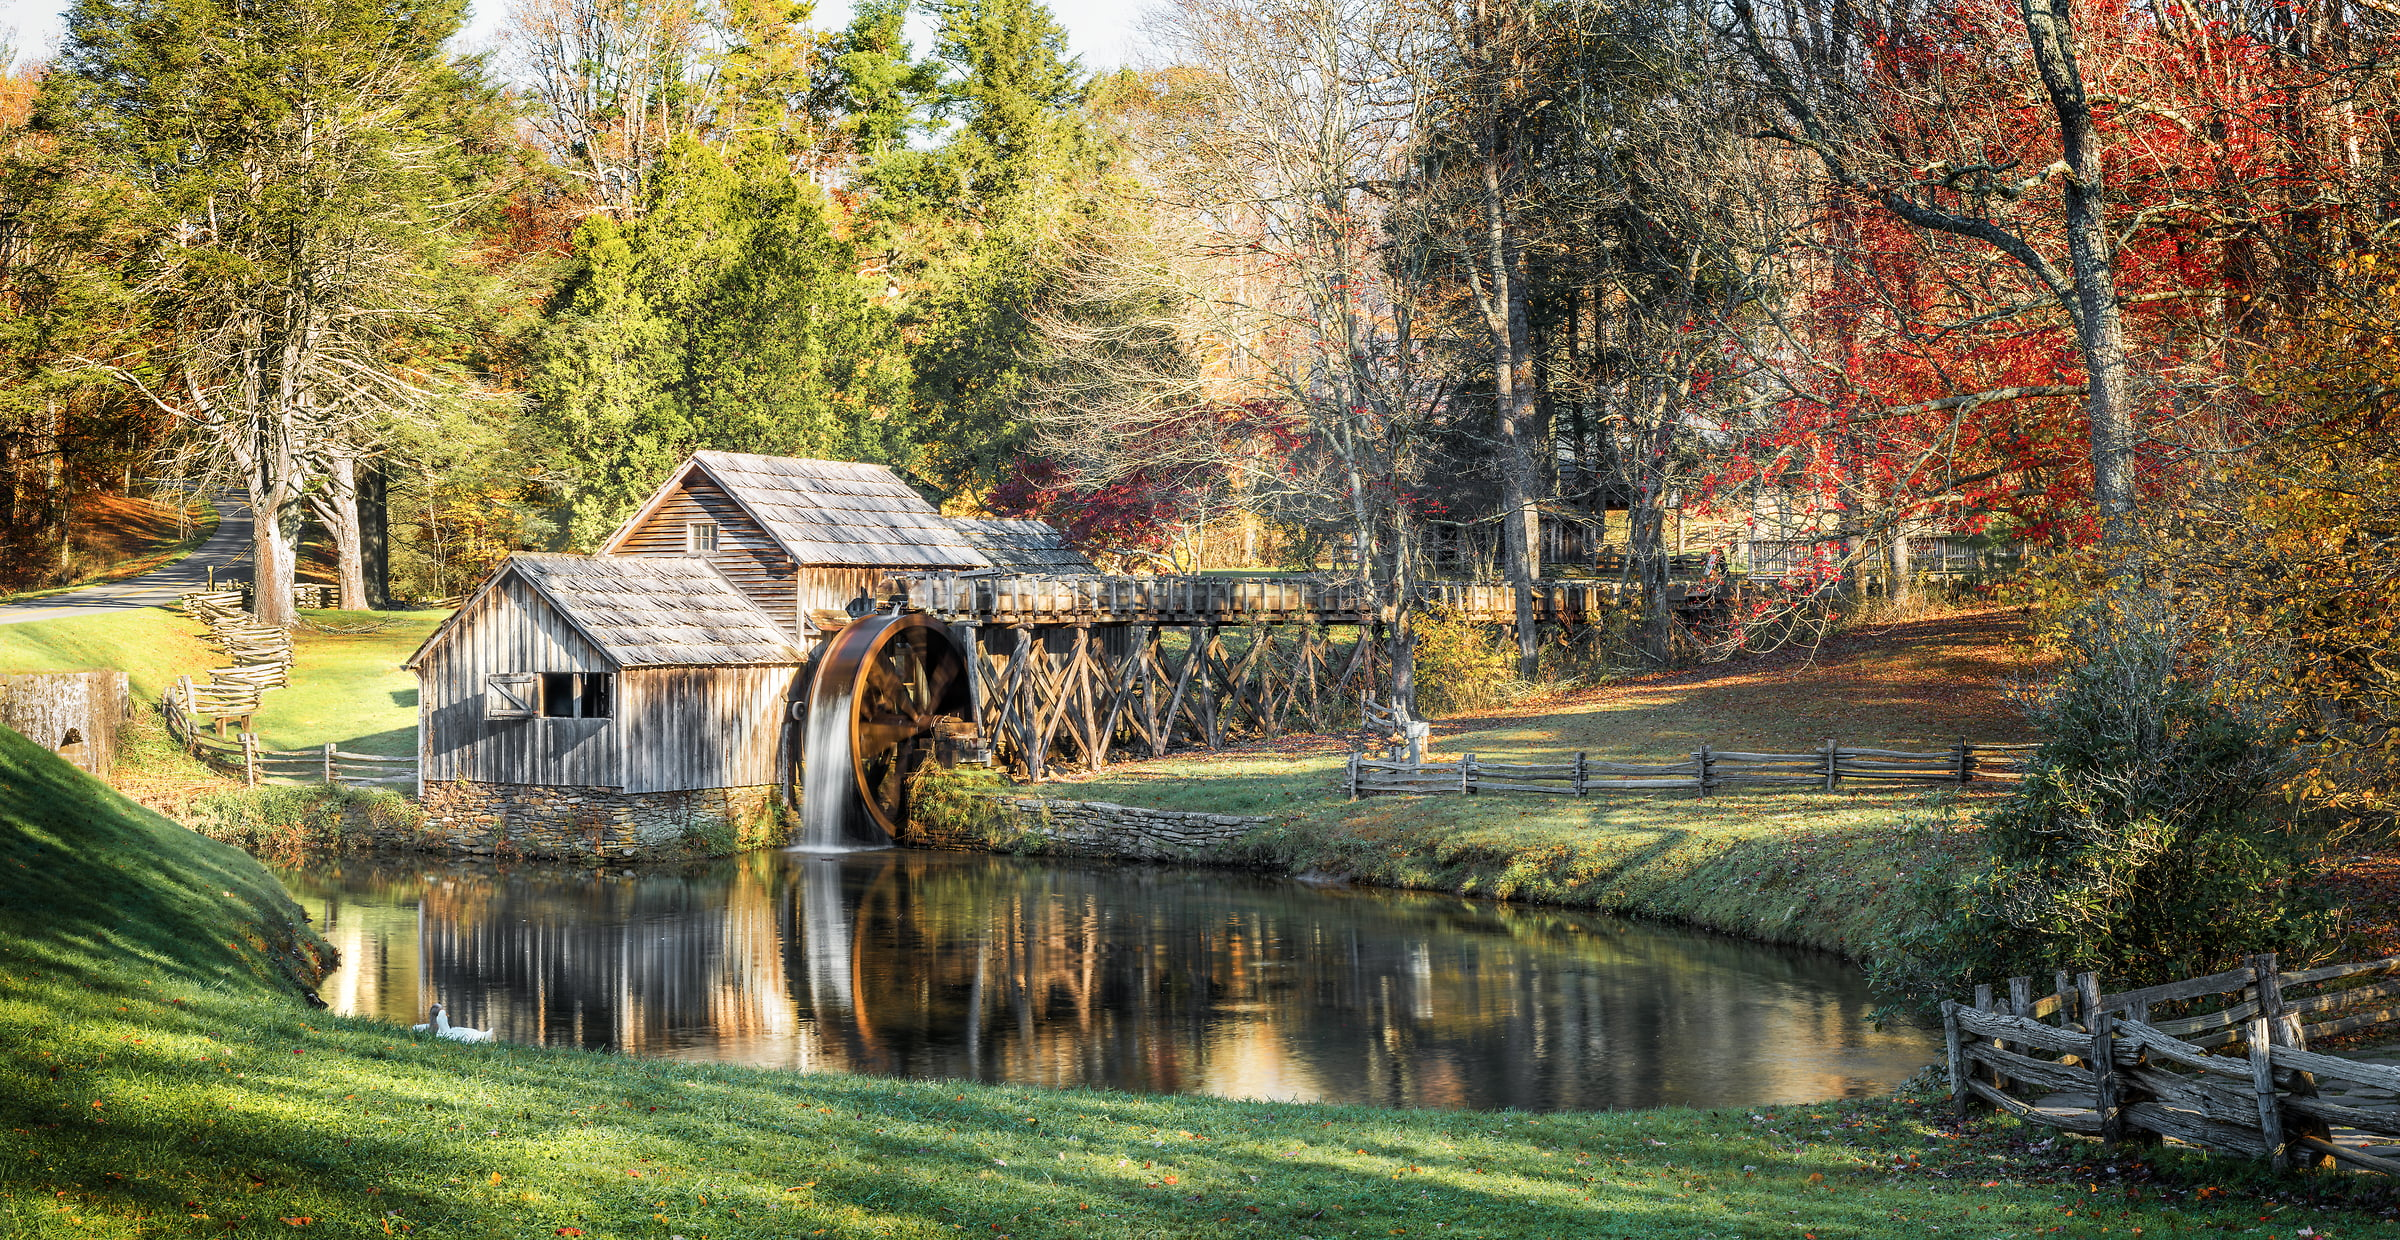 138 megapixels! A very high resolution, large-format VAST photo of a quaint old mill and a waterwheel; fine art photograph created by Jim Tarpo at Milepost 176 of the Blue Ridge Pkwy, Virginia